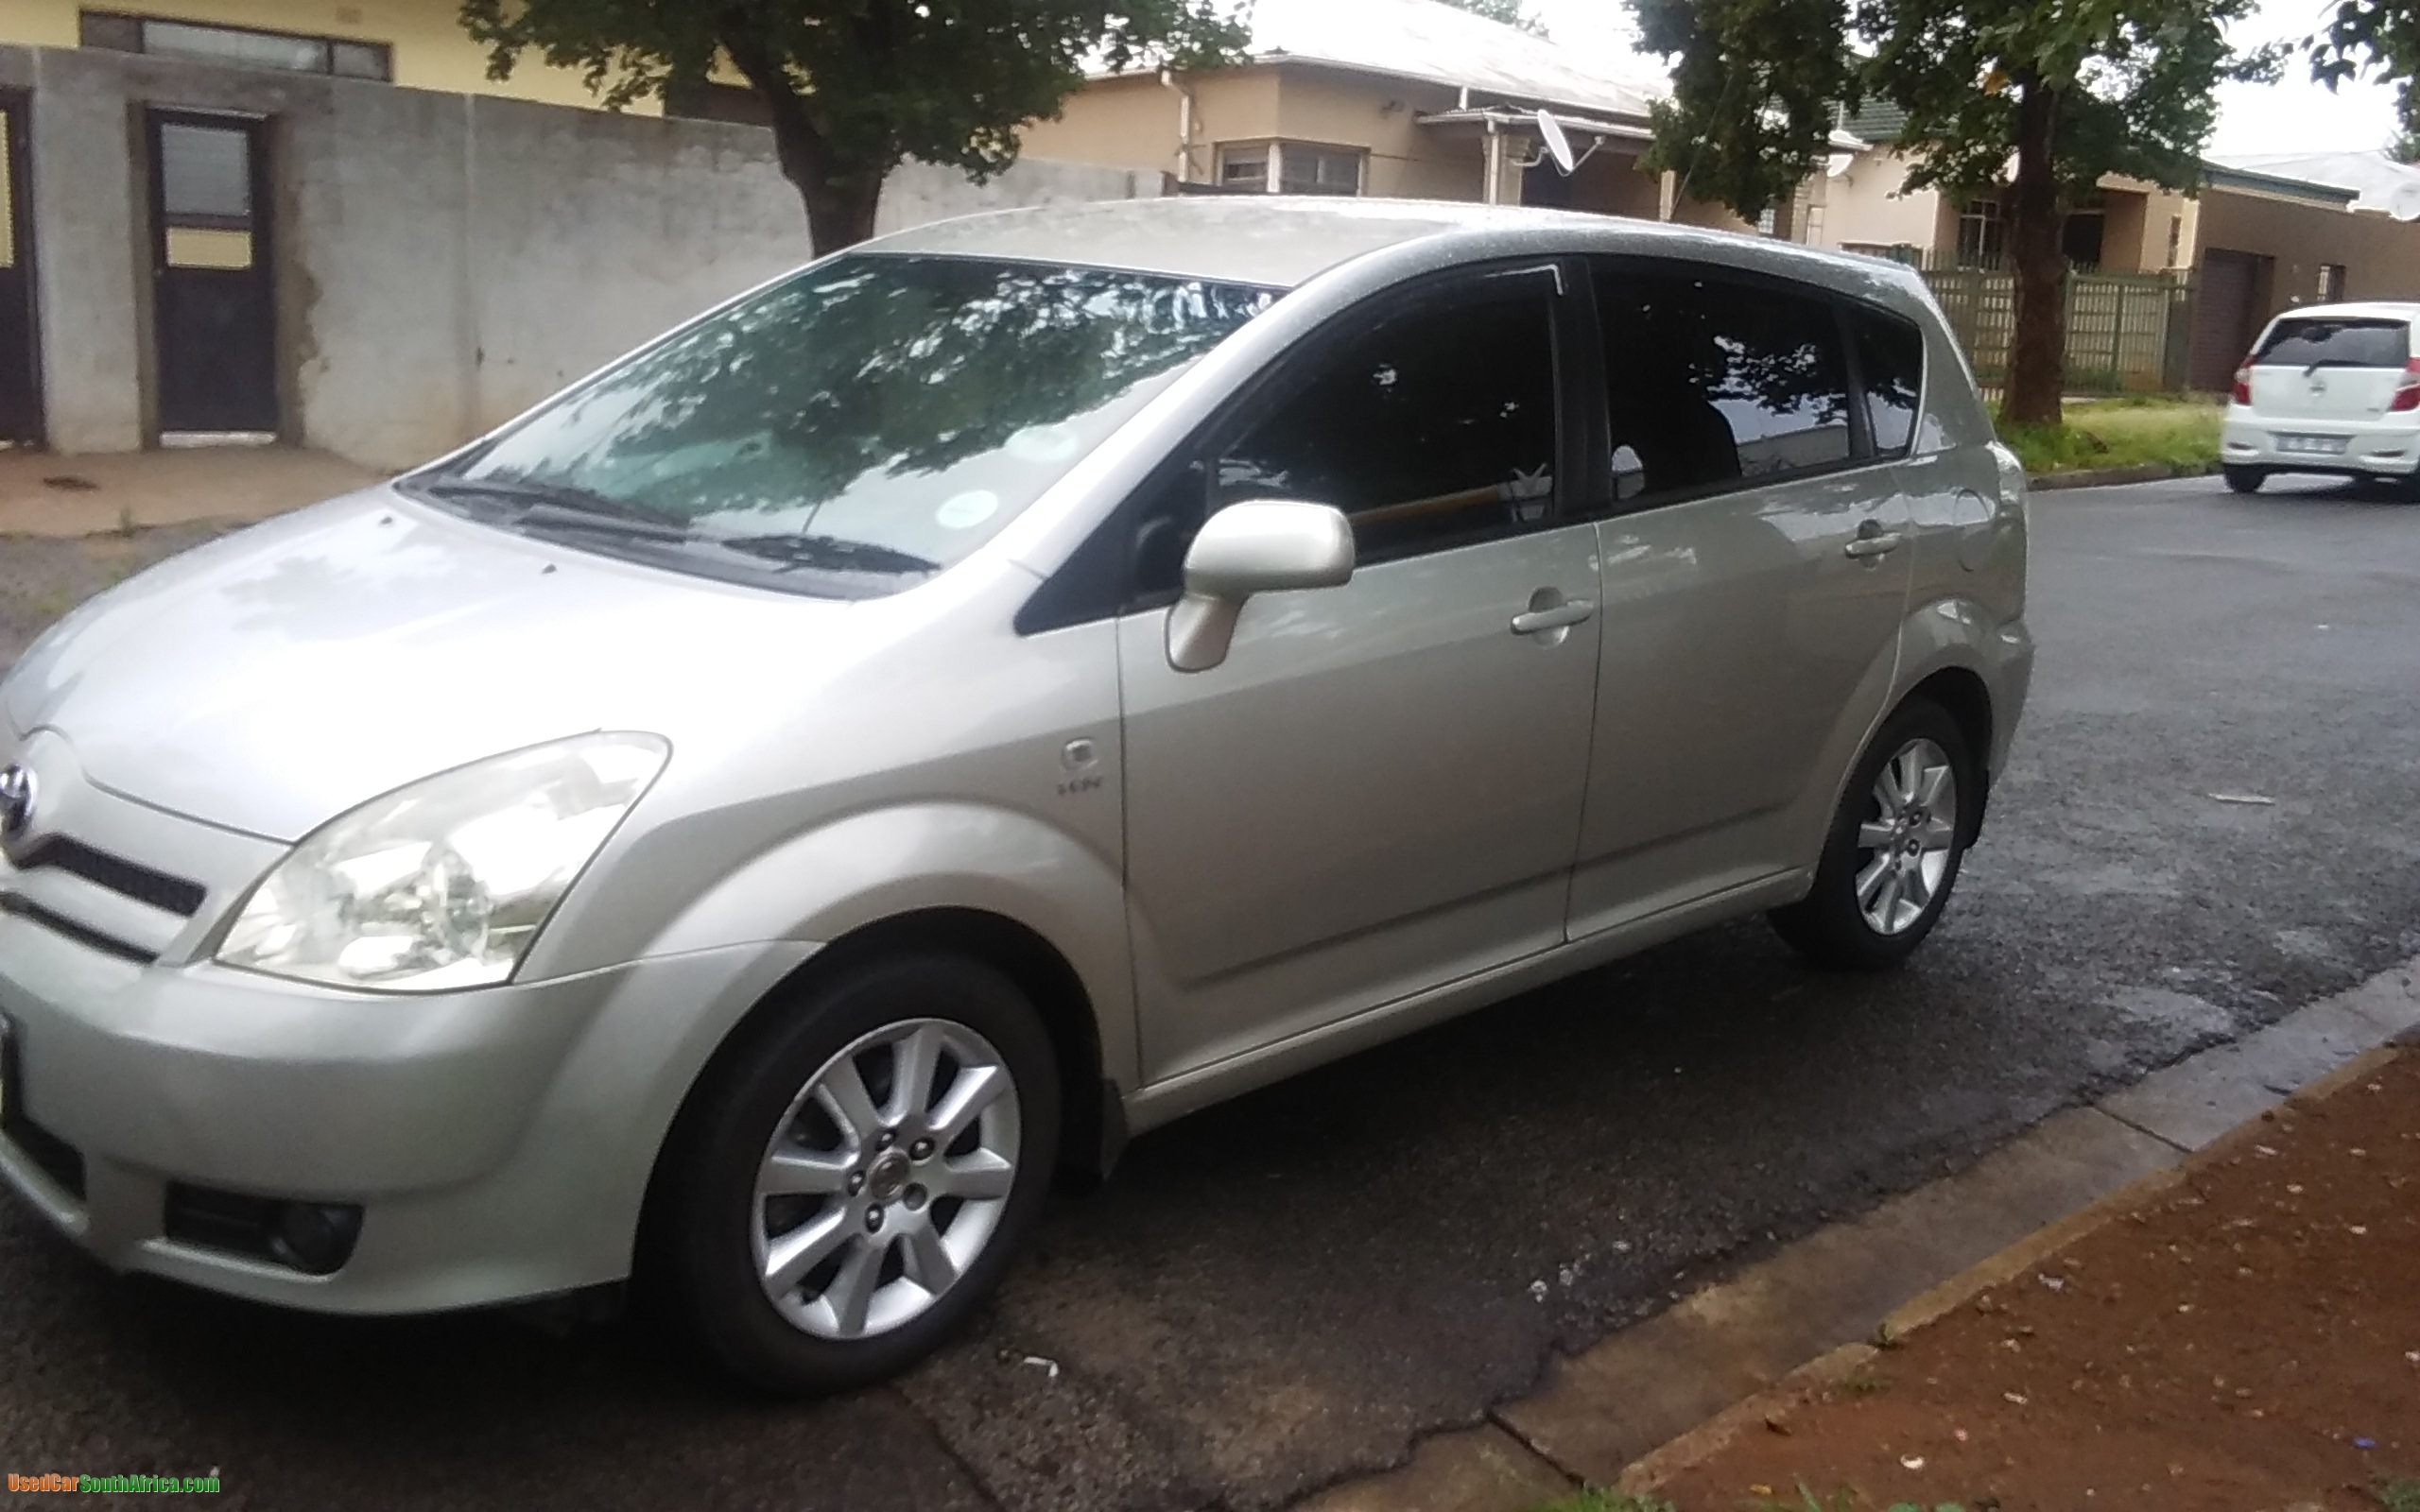 2004 toyota verso sx used car for sale in johannesburg city gauteng south africa usedcarsouthafrica 0